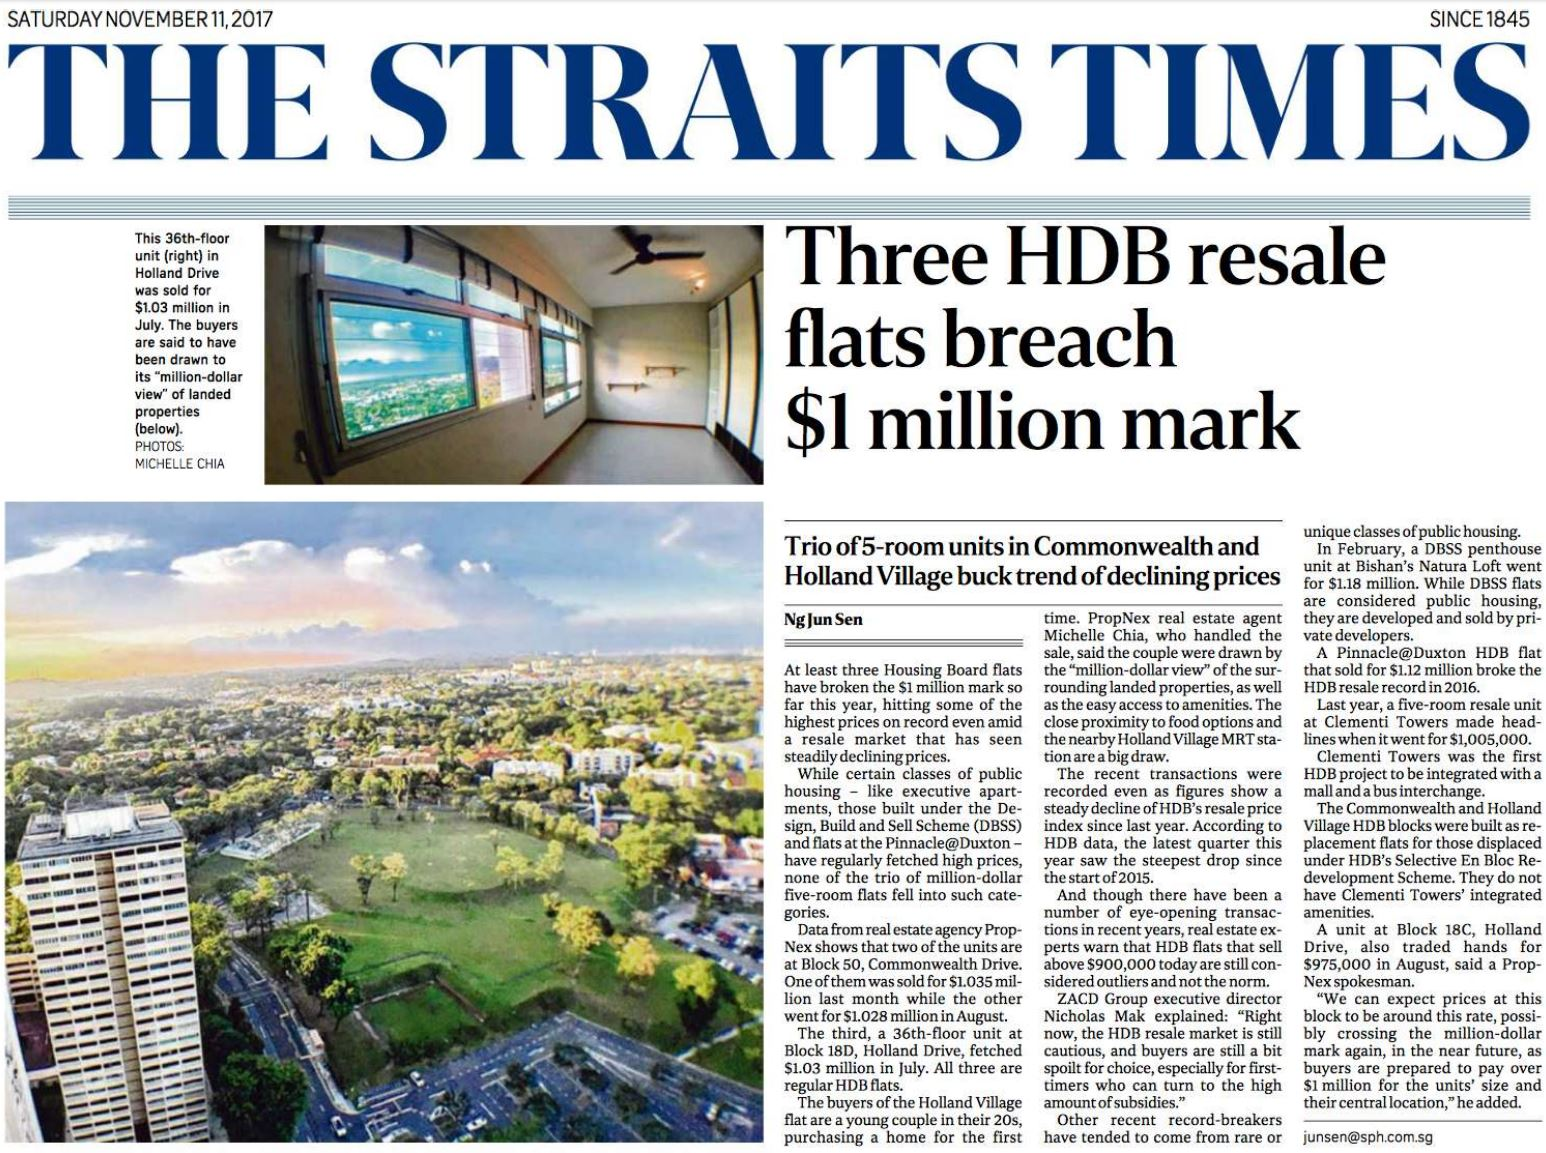 HDB-Resale-Price-breach-million